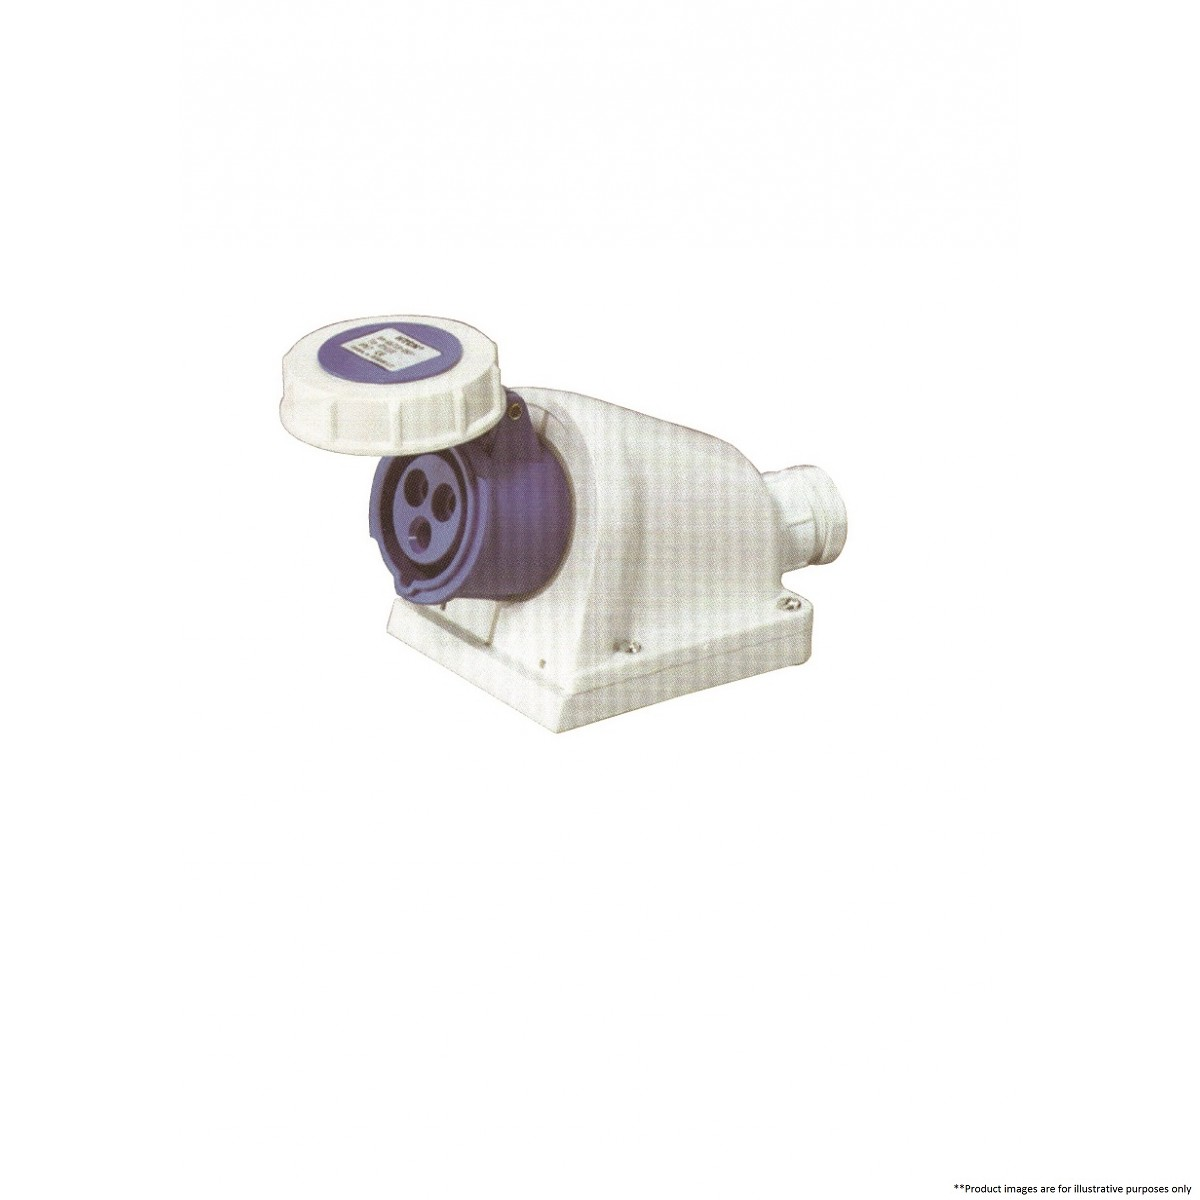 Wall Mounted Lamp Socket : HTCN 1231 WALL MOUNTED SOCKET - Coupler & Plugs - Accessories - By Category Marine Electrical ...